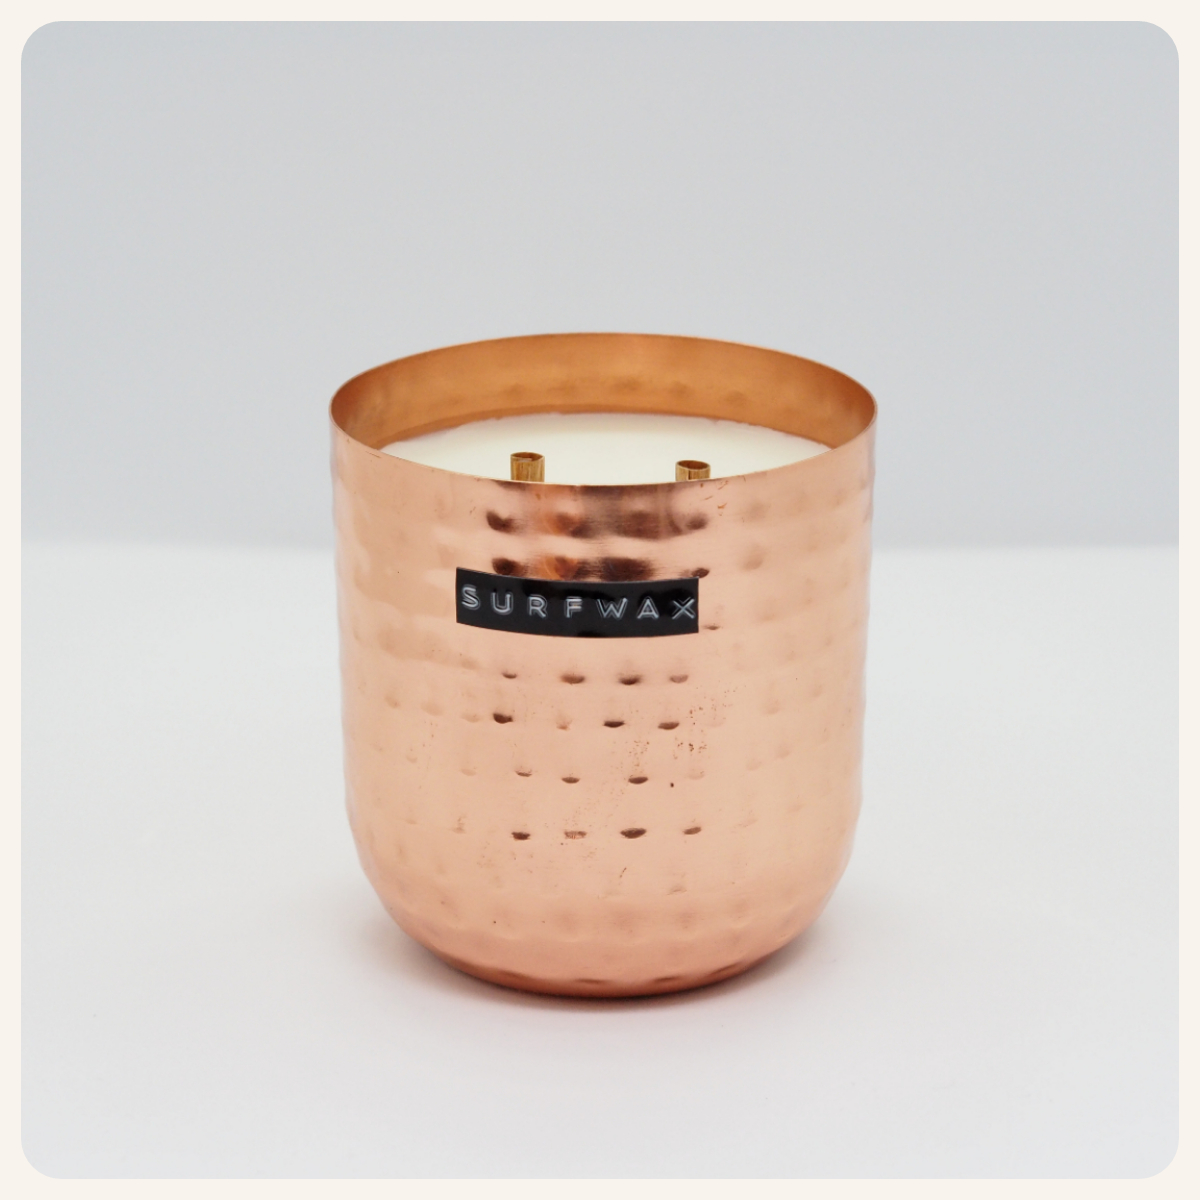 Surfwax Original Hammered Copper Candle.